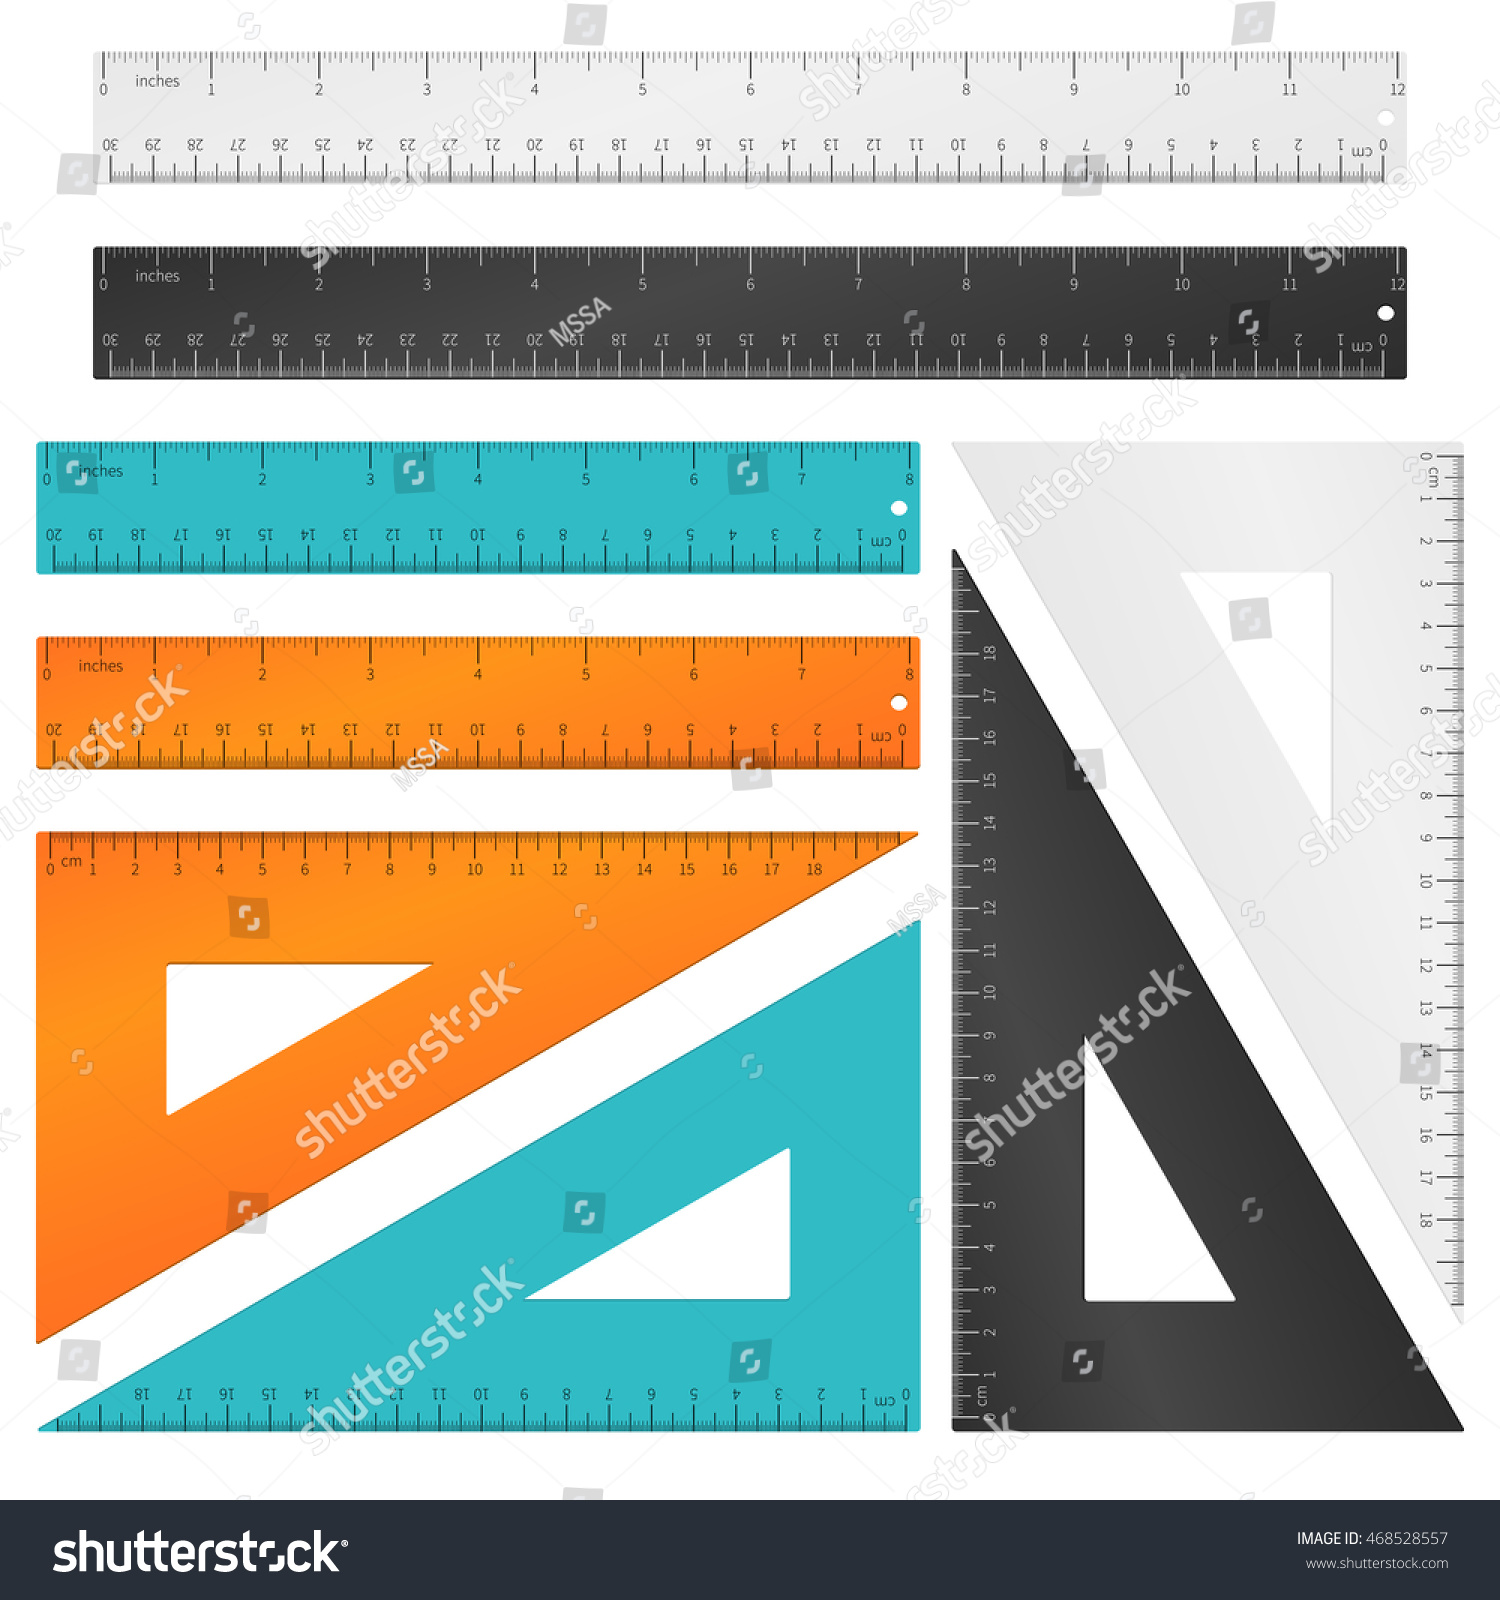 Rulers triangle inches centimeters millimeters scale stock vector rulers and triangle with inches centimeters and millimeters scale tool education measurement instrument buycottarizona